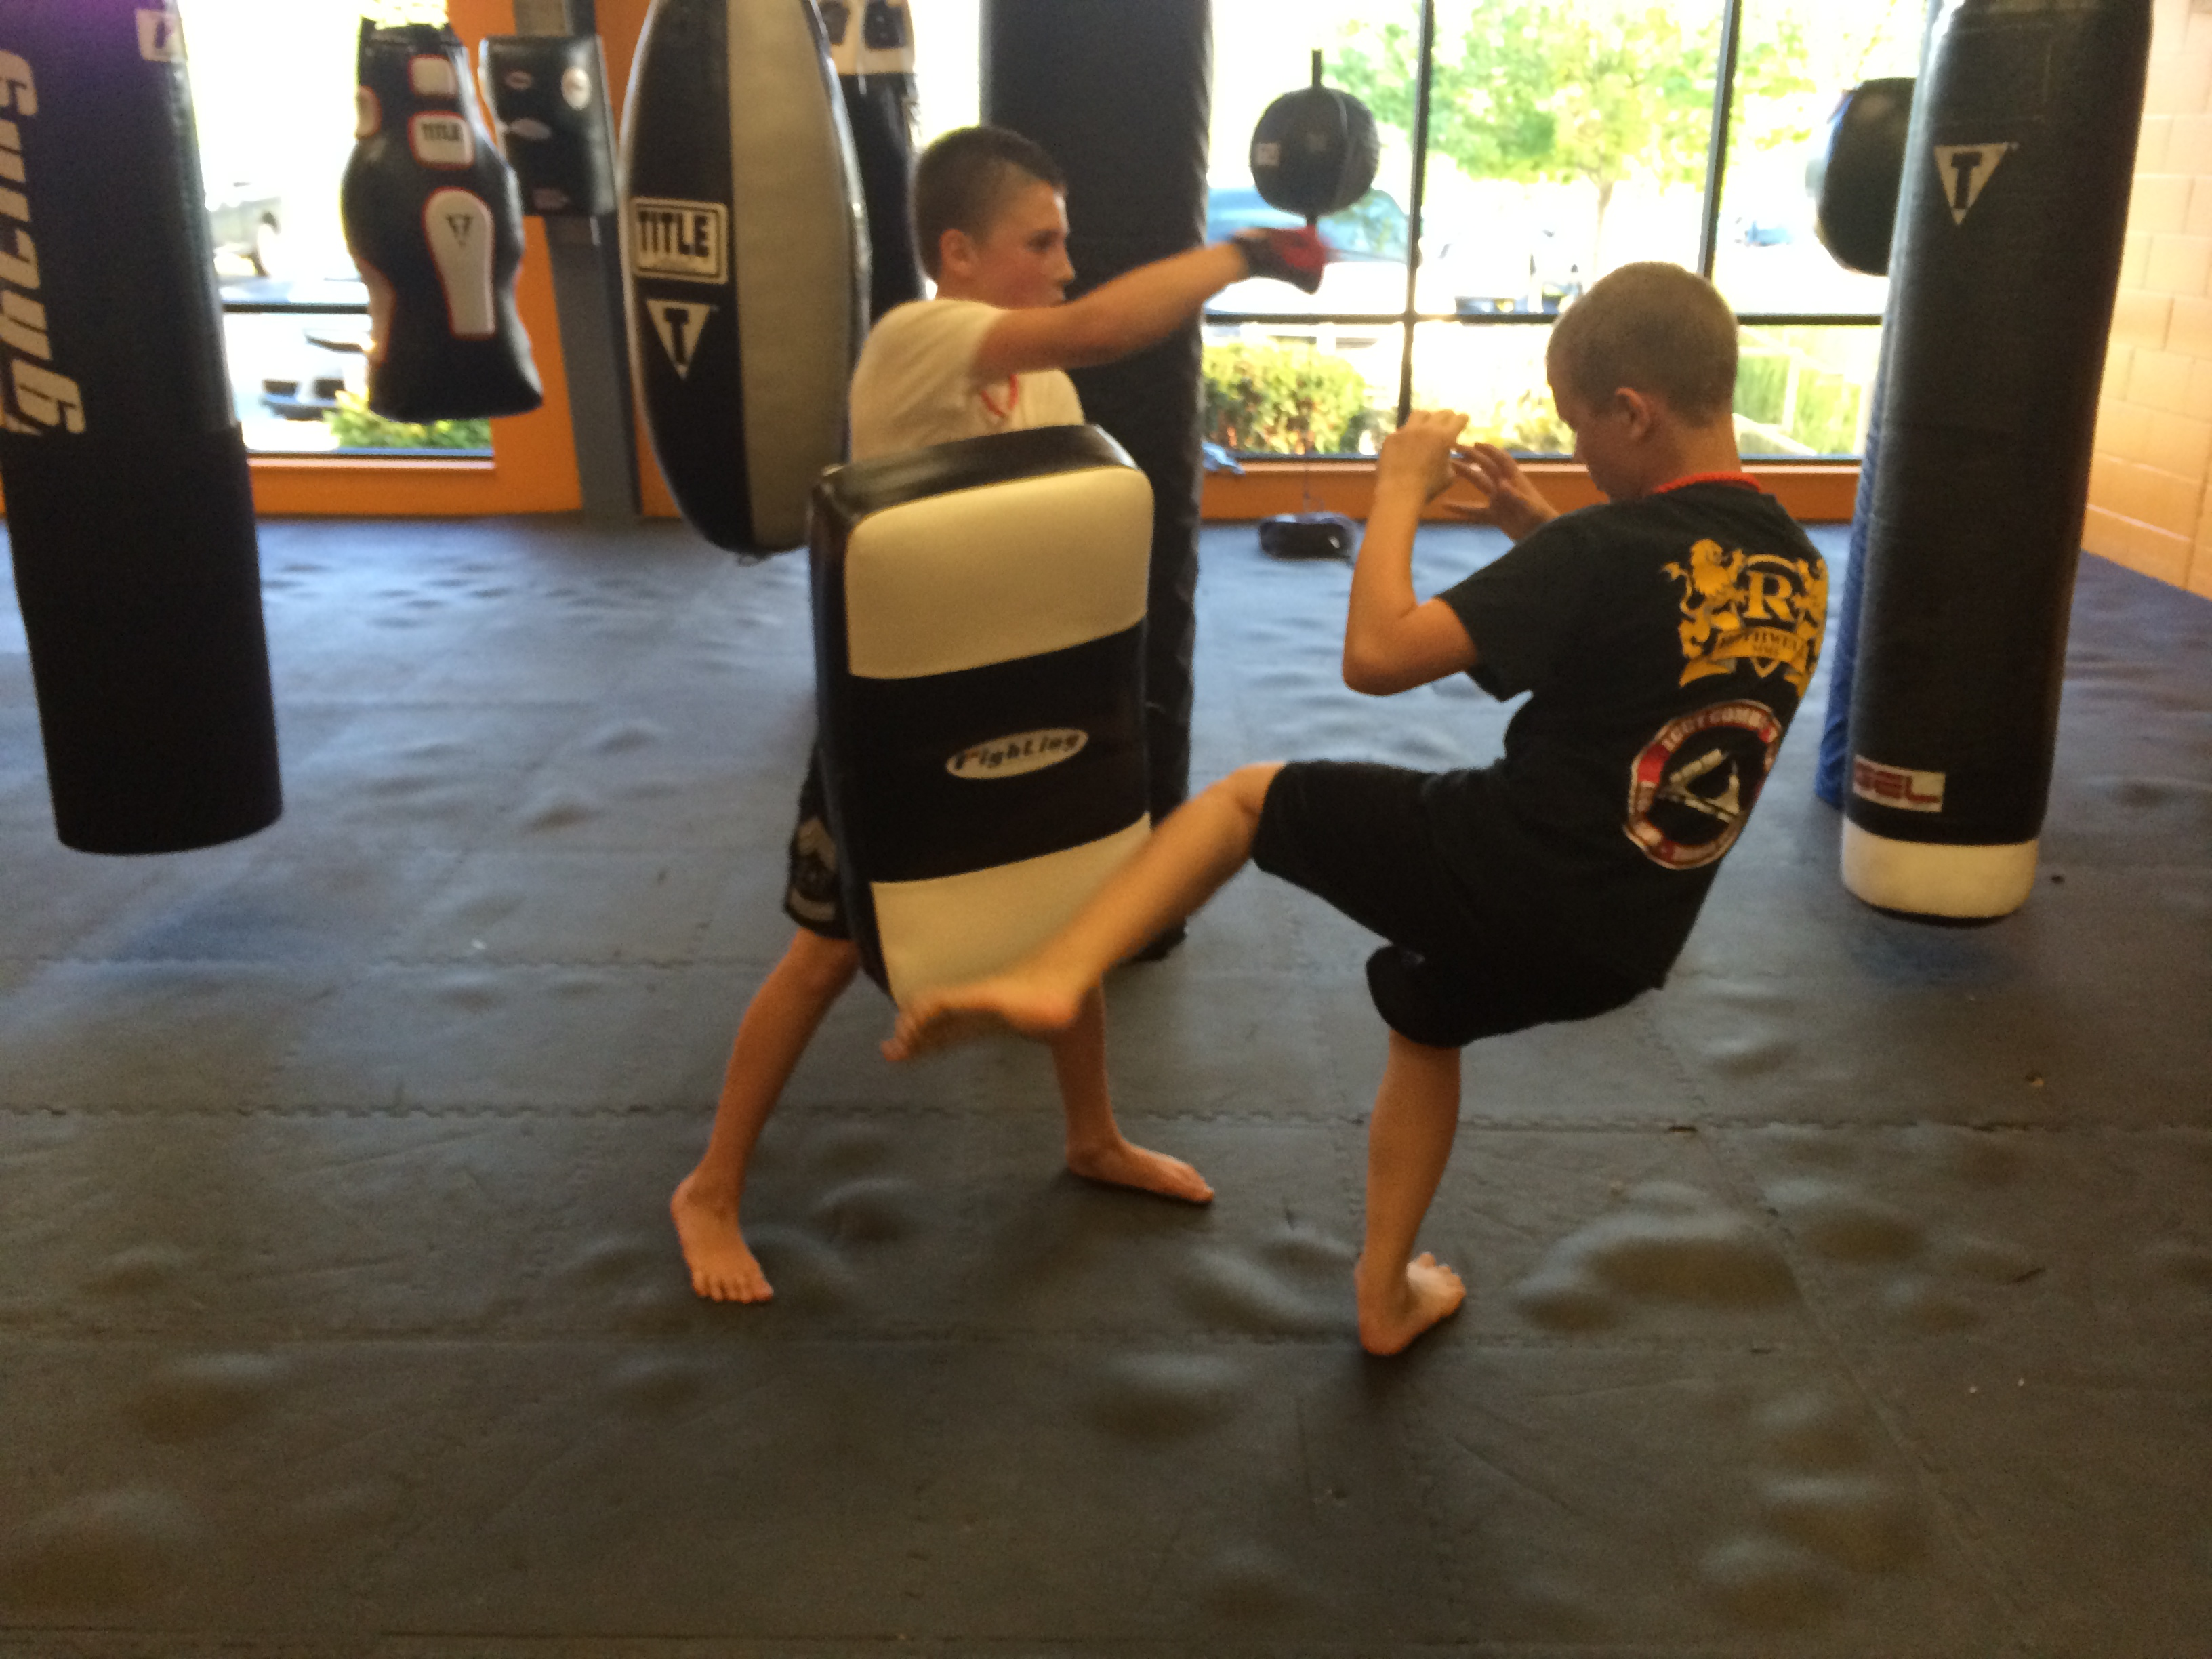 Kids Kickboxing, Kicks